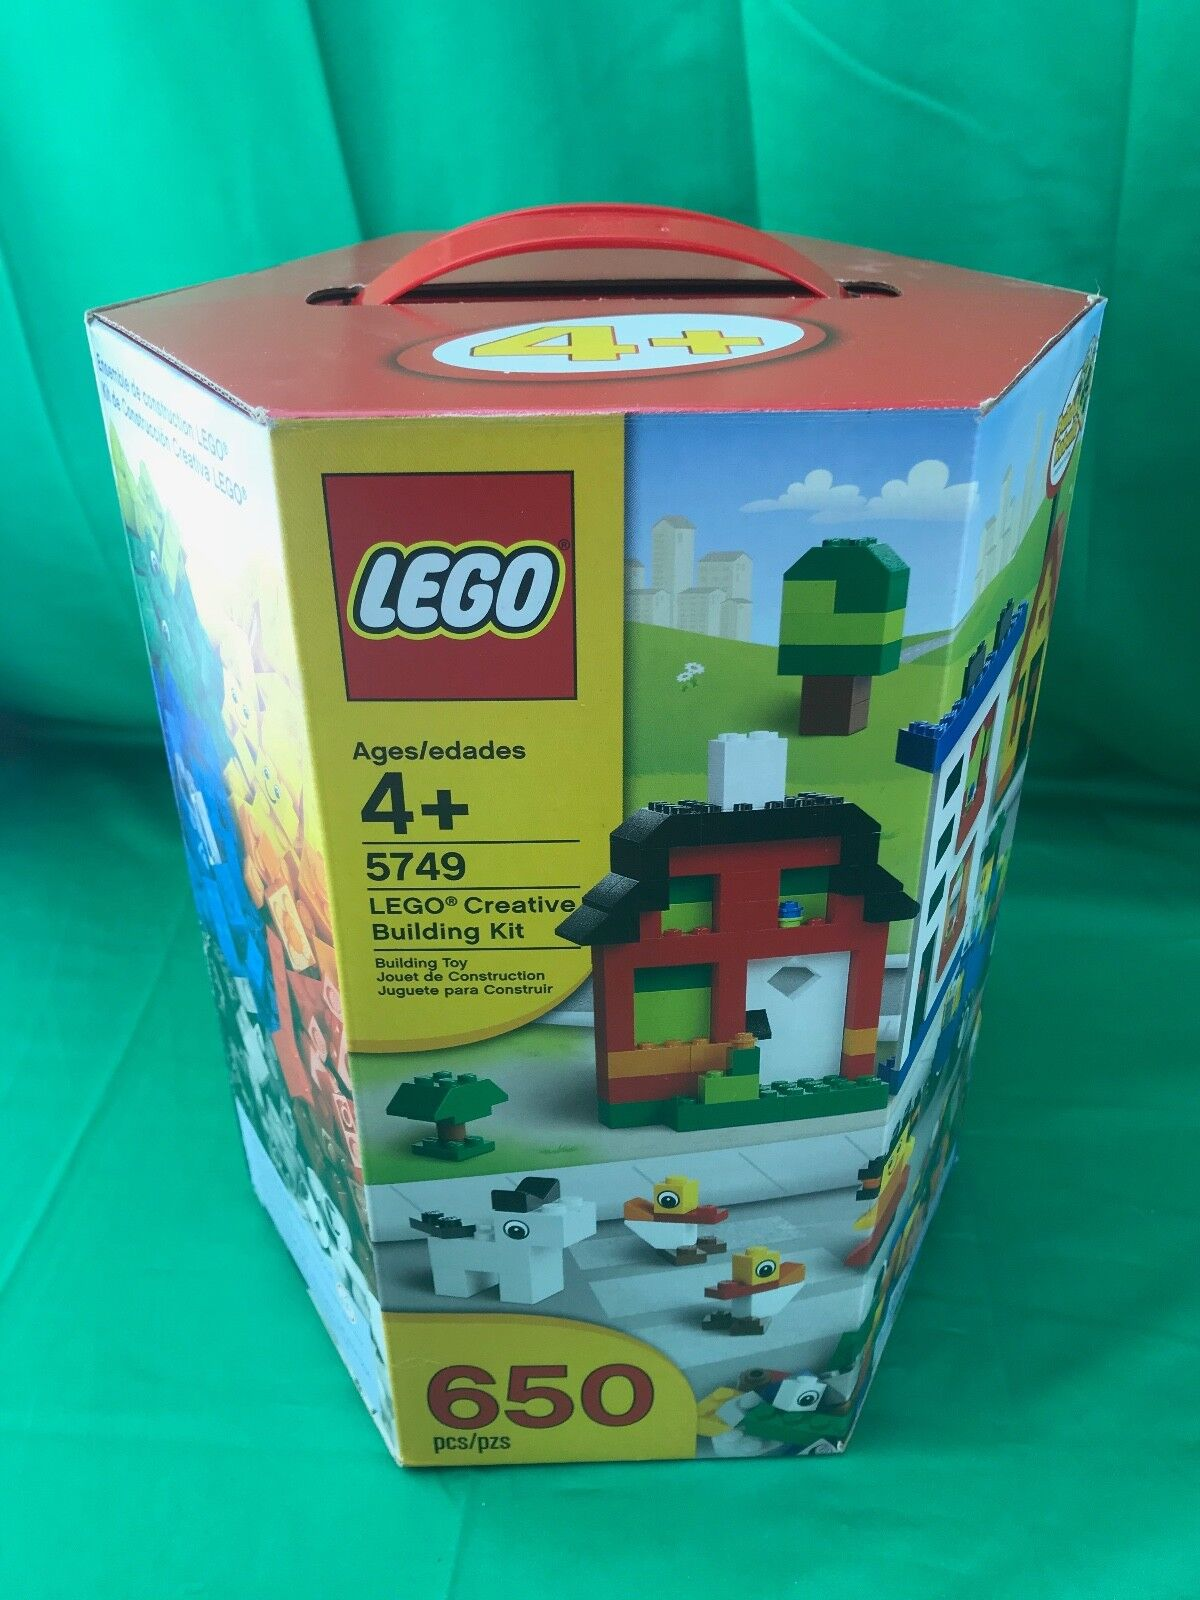 NEW & Unopened Lego 5749 Creative Building Kit - 650 pieces